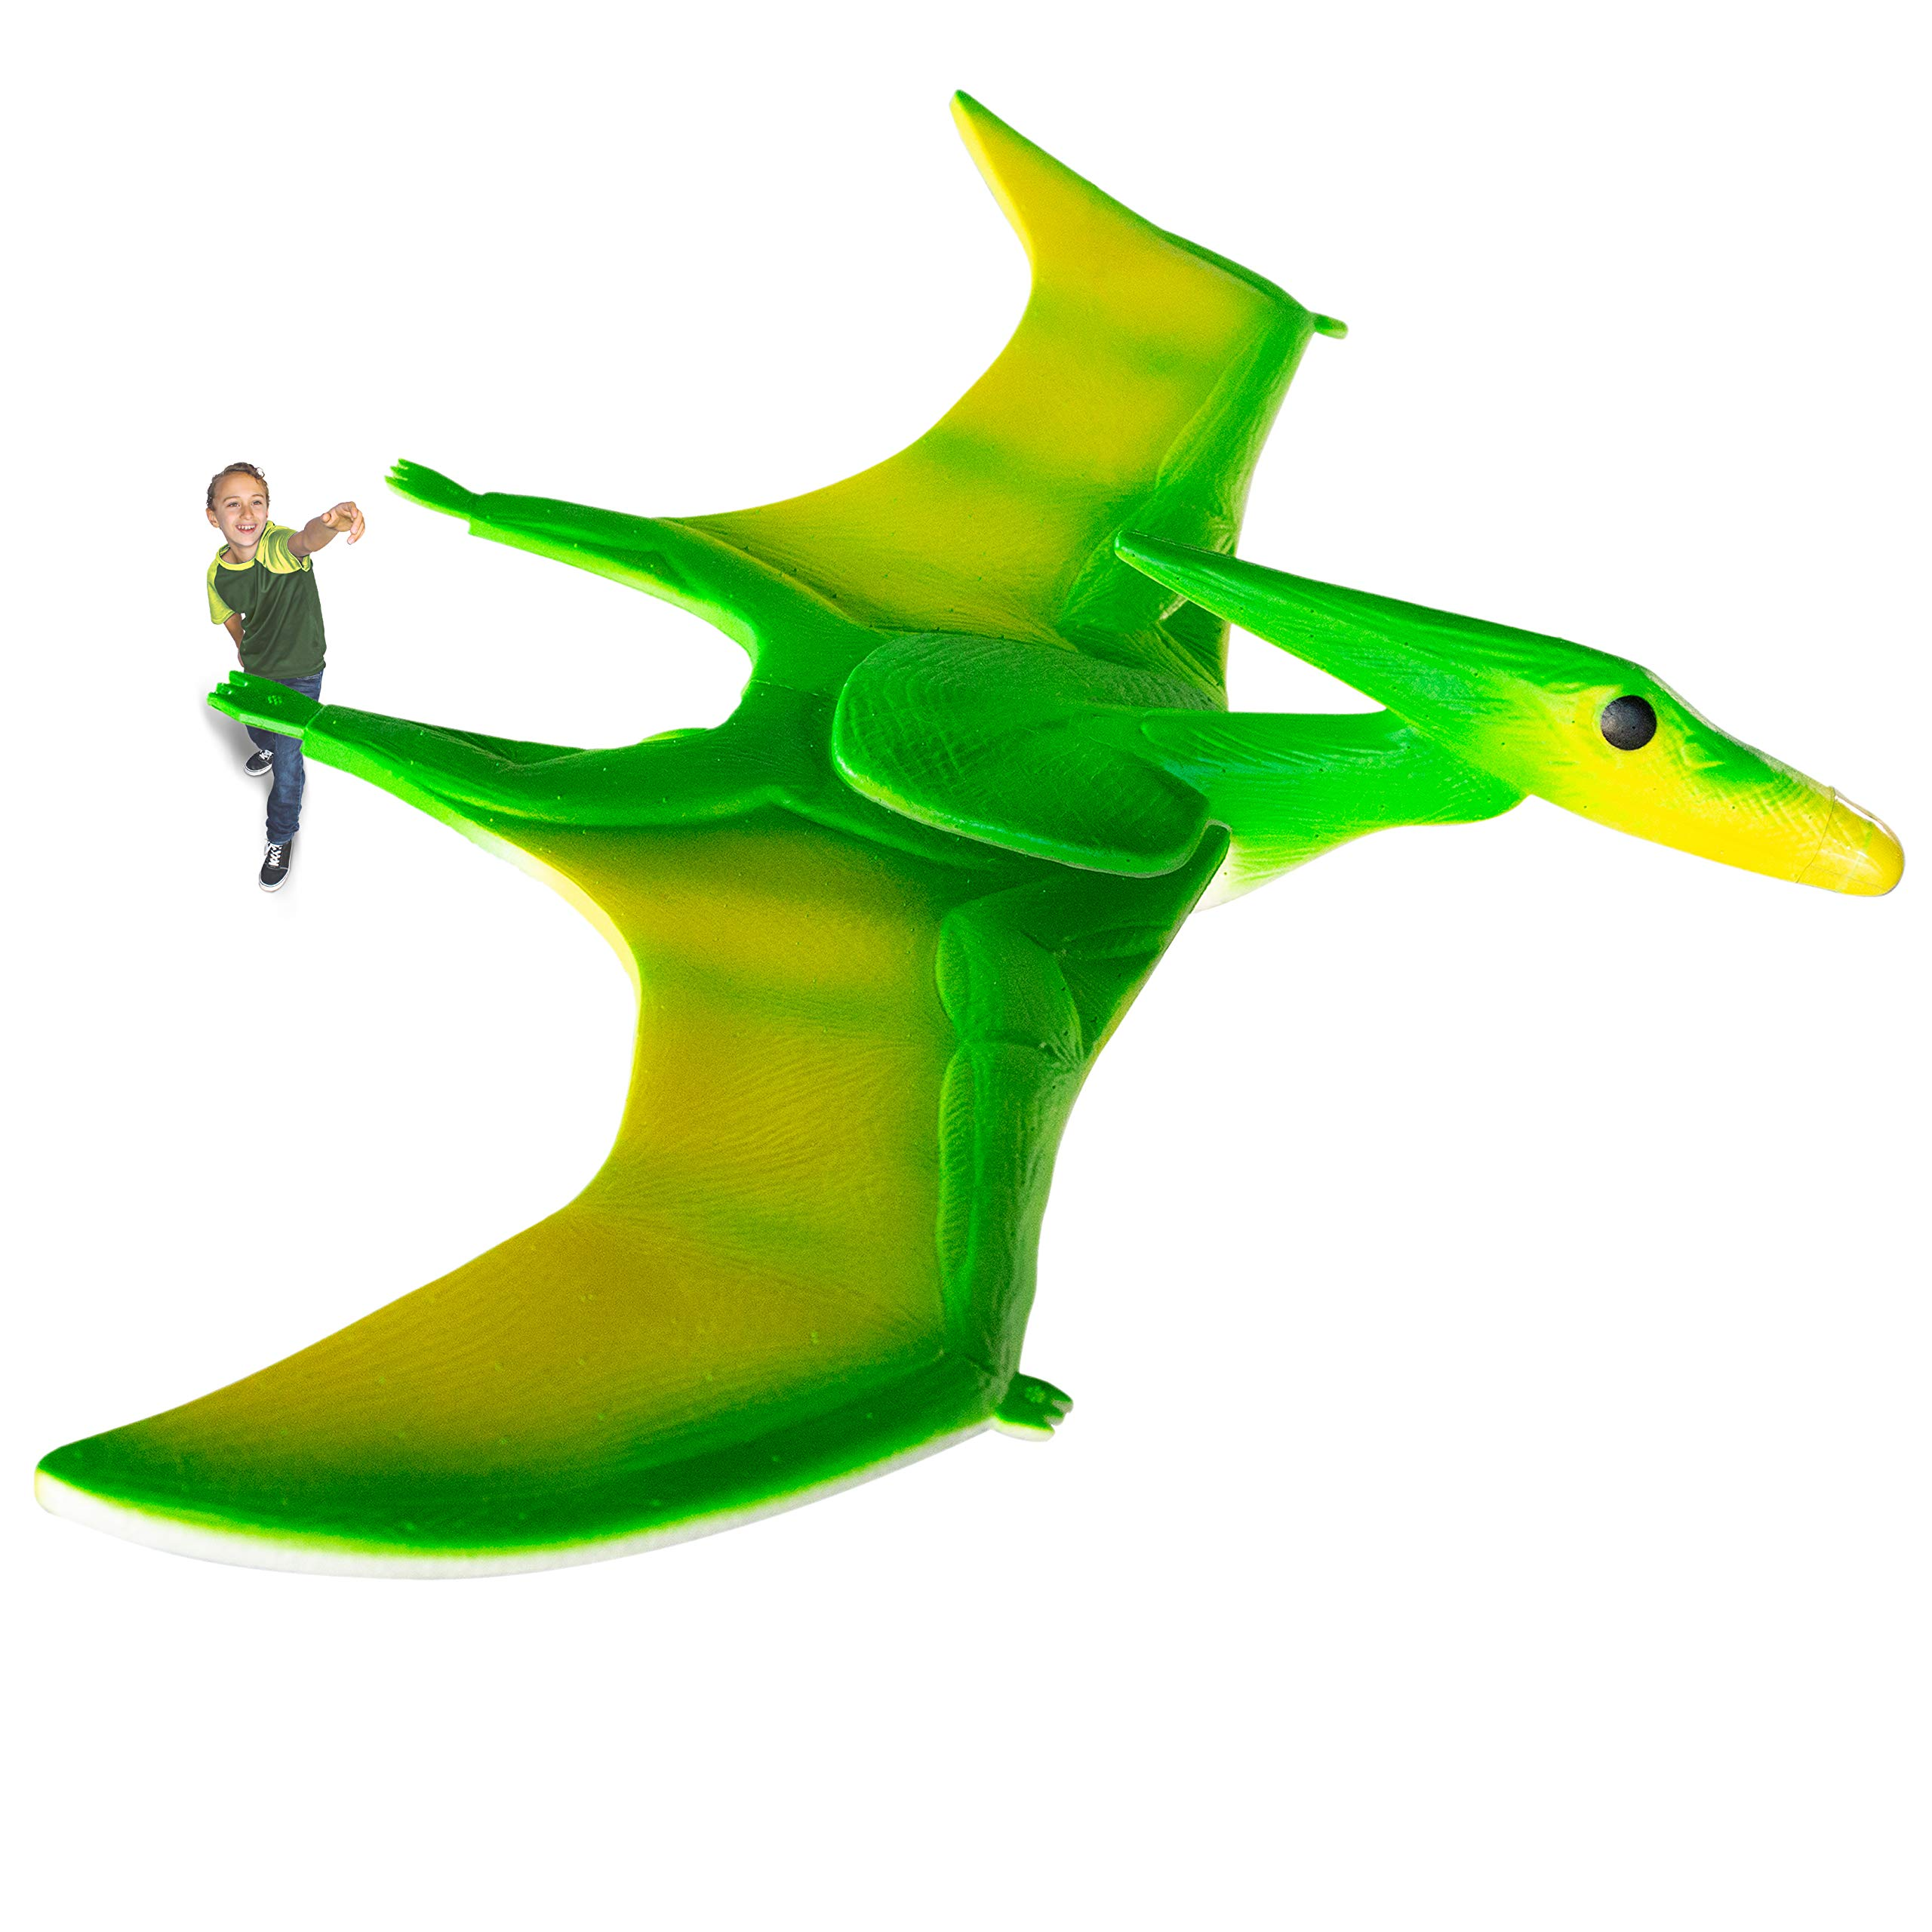 Geospace Geoglide Terror Pterodactyl Glider Kit with 33'' Wingspan, Green by Geospace